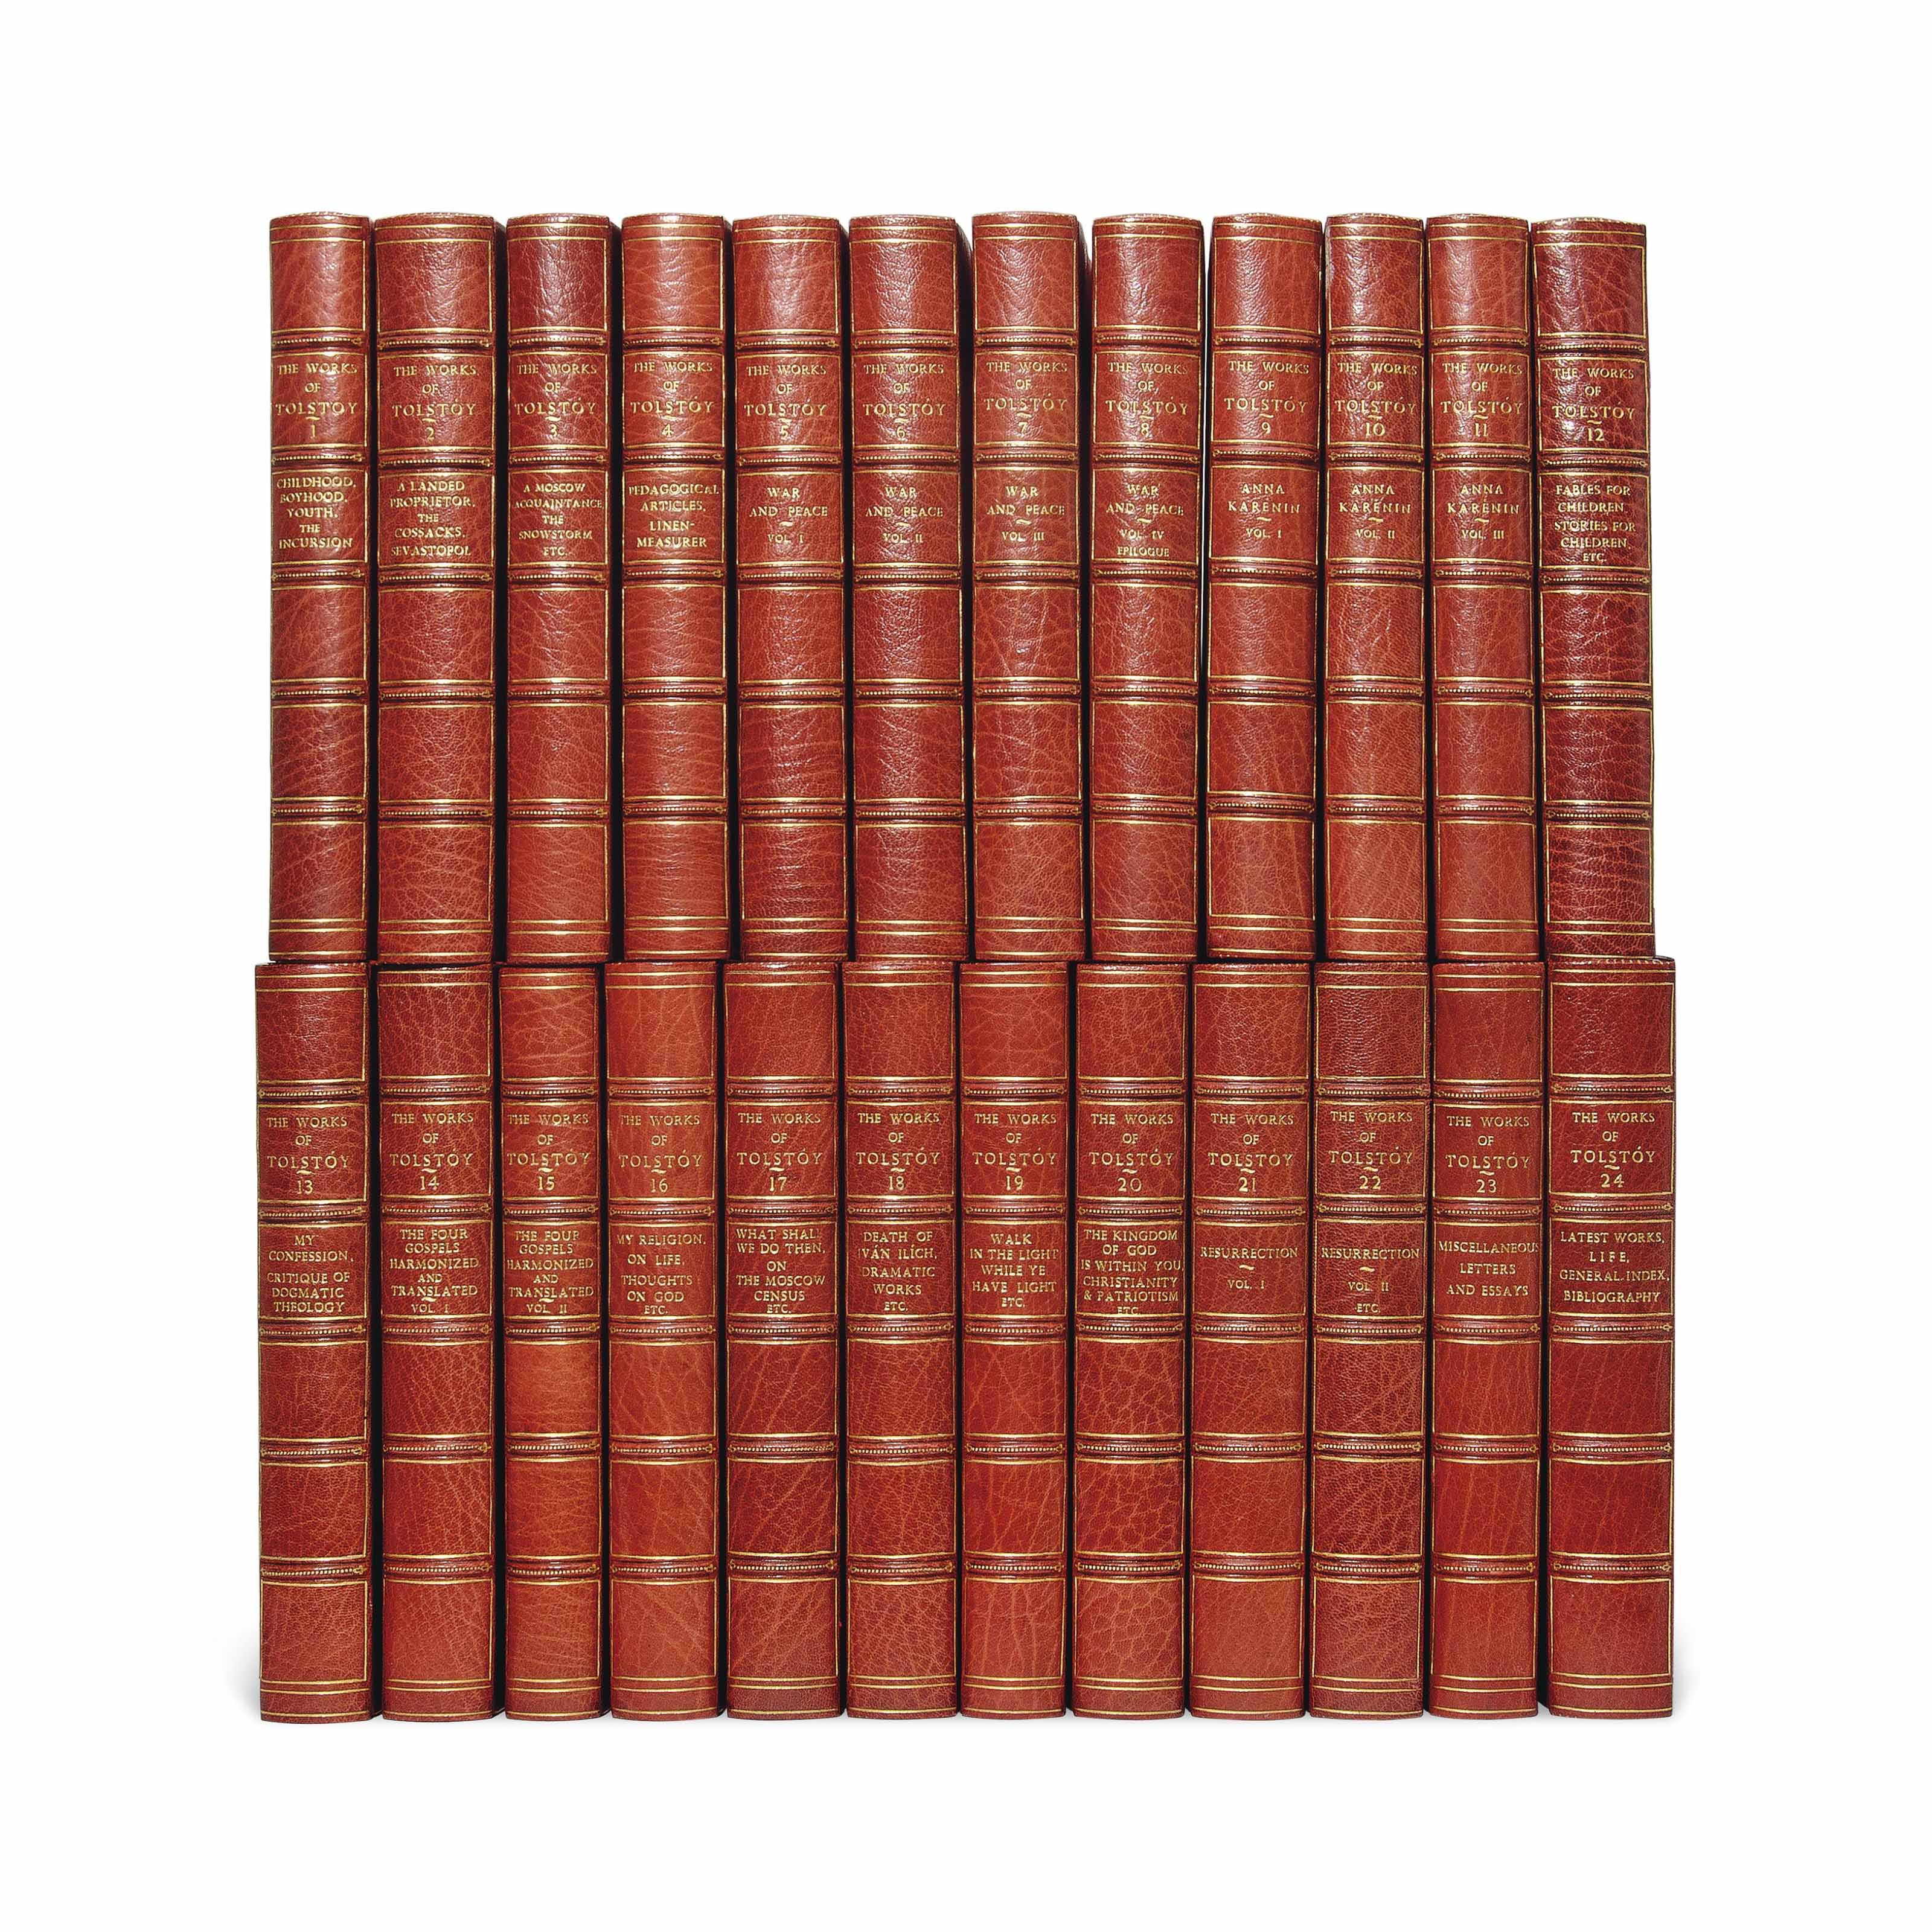 TOLSTOY, Leo (1828-1910). The Complete Works. London: G. J. Howell, 1905. 8° (222 x 250mm). Contemporary half red morocco, gilt spine, top edge gilt. LIMITED EDITION, NO. 23 OF 250 COPIES ONLY